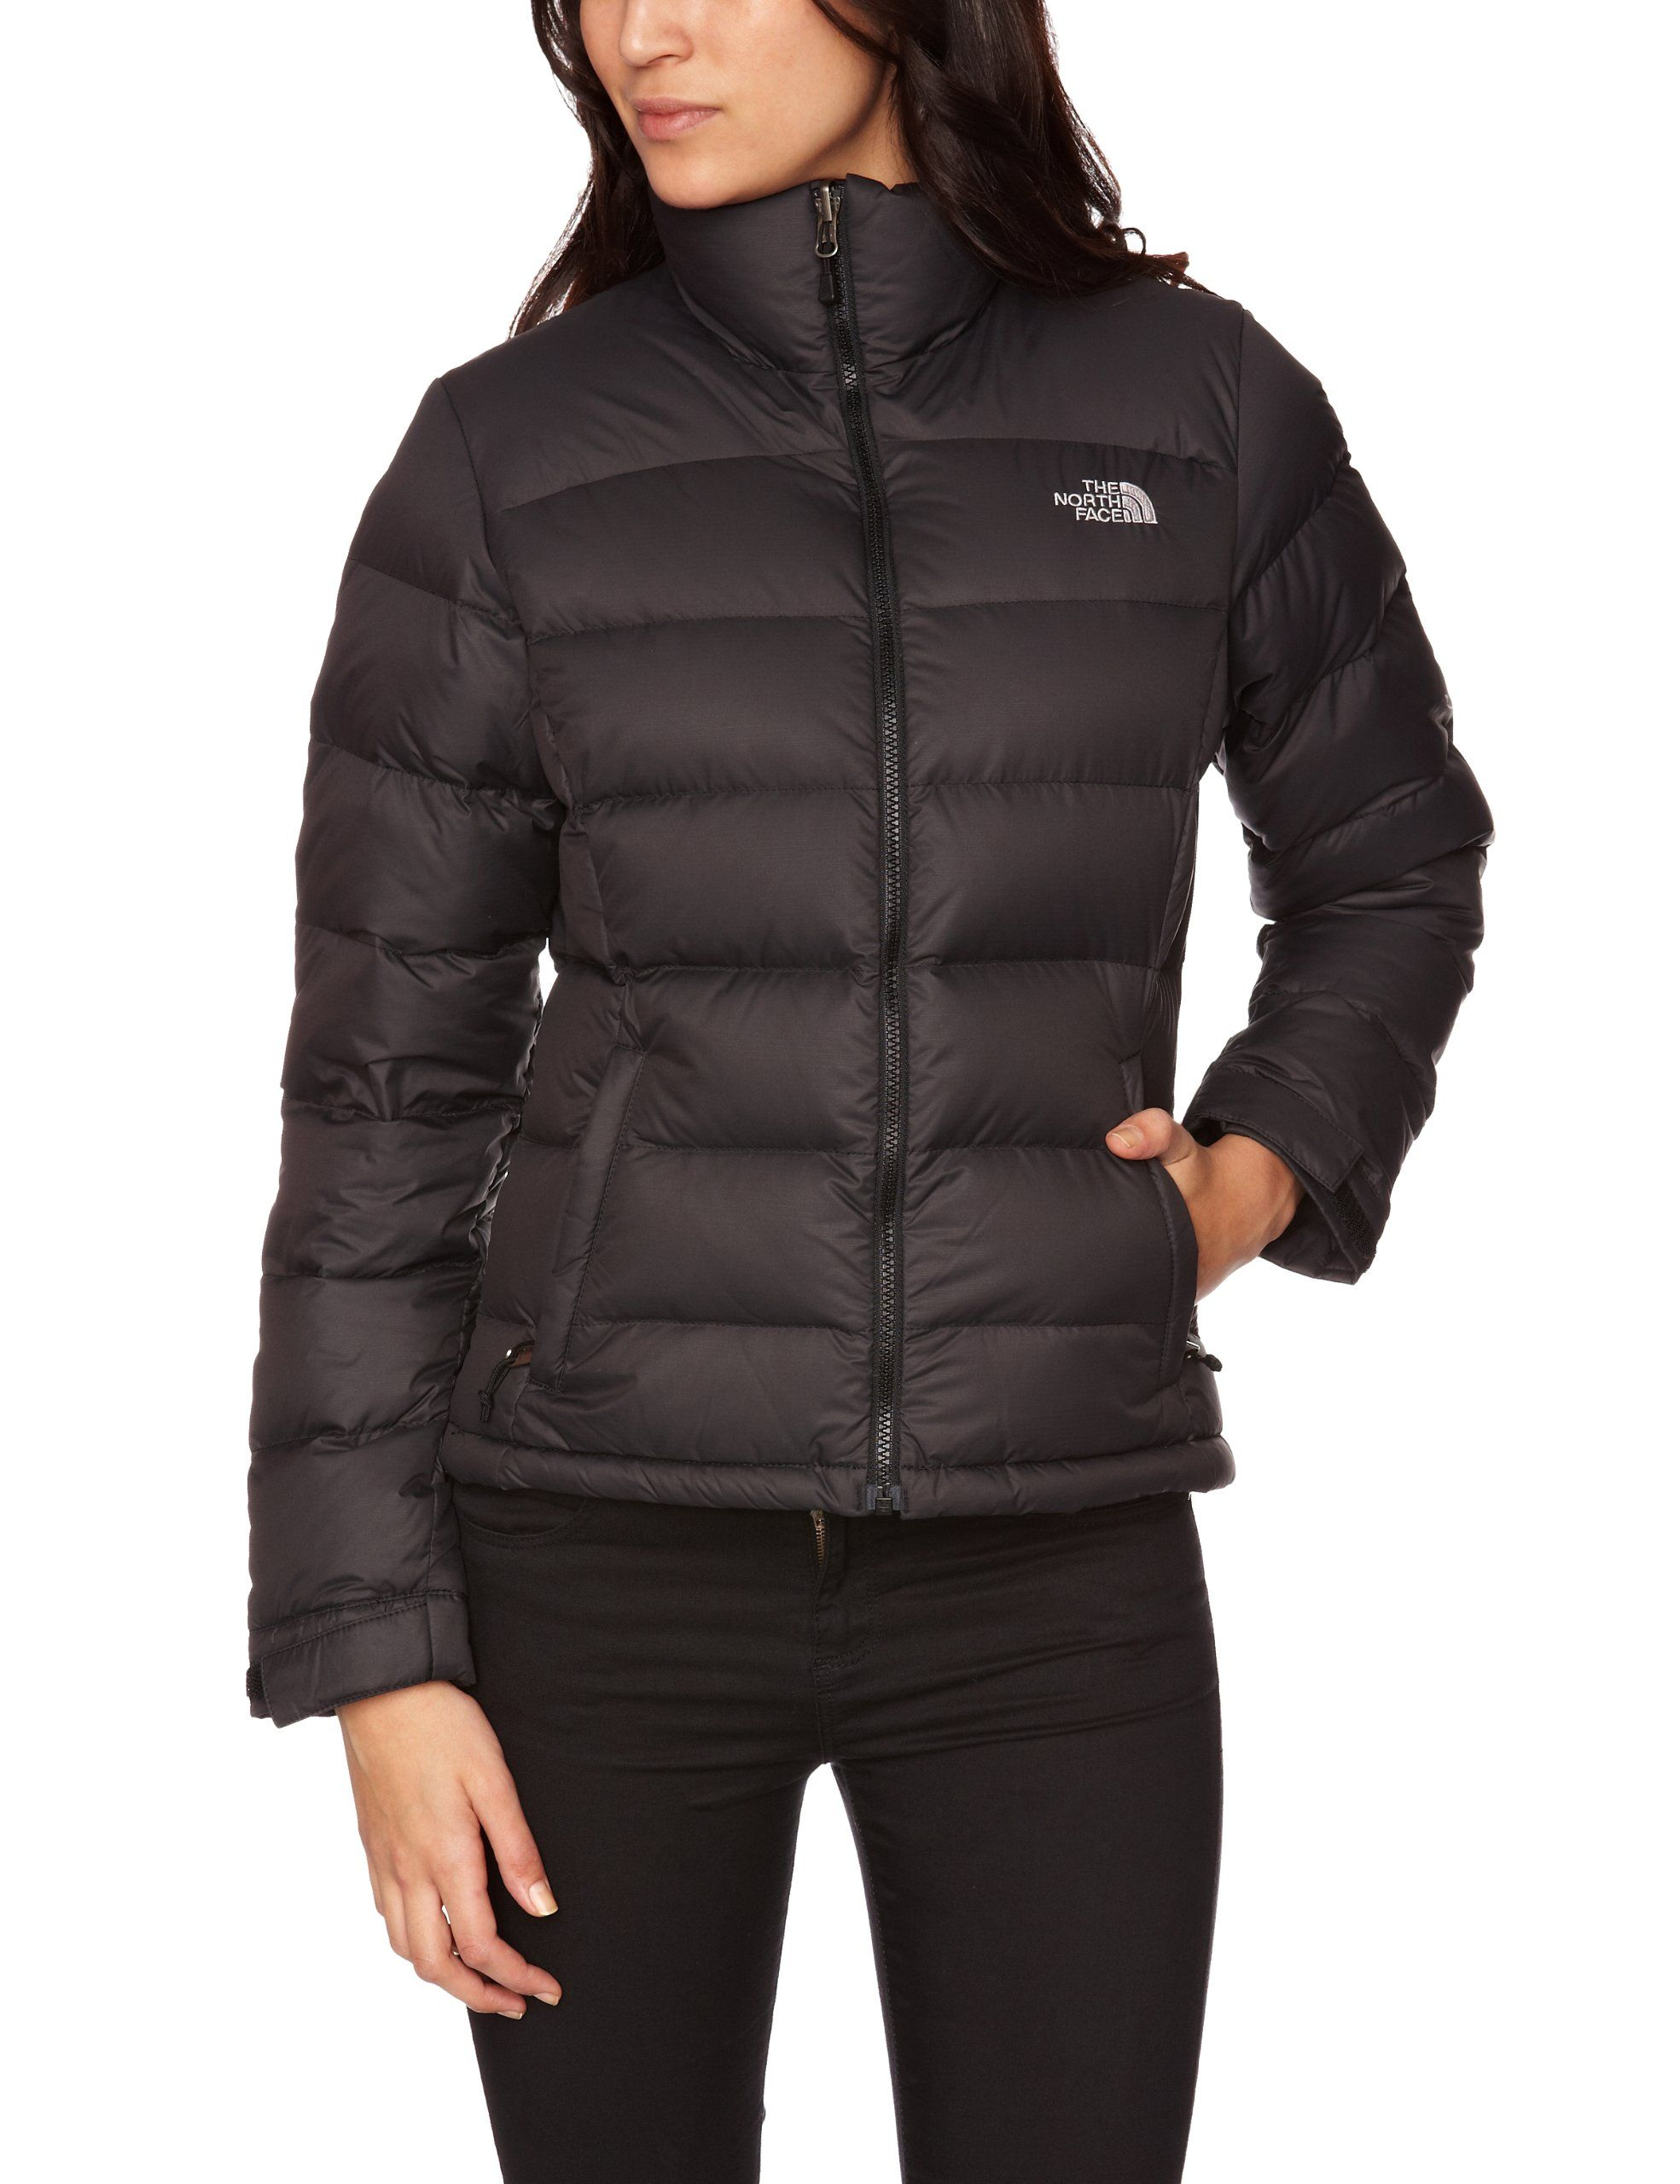 detailed look 6ddcd b59a2 ... promo code for the north face womens nuptse 2 down jacket tnf black  medium. standard